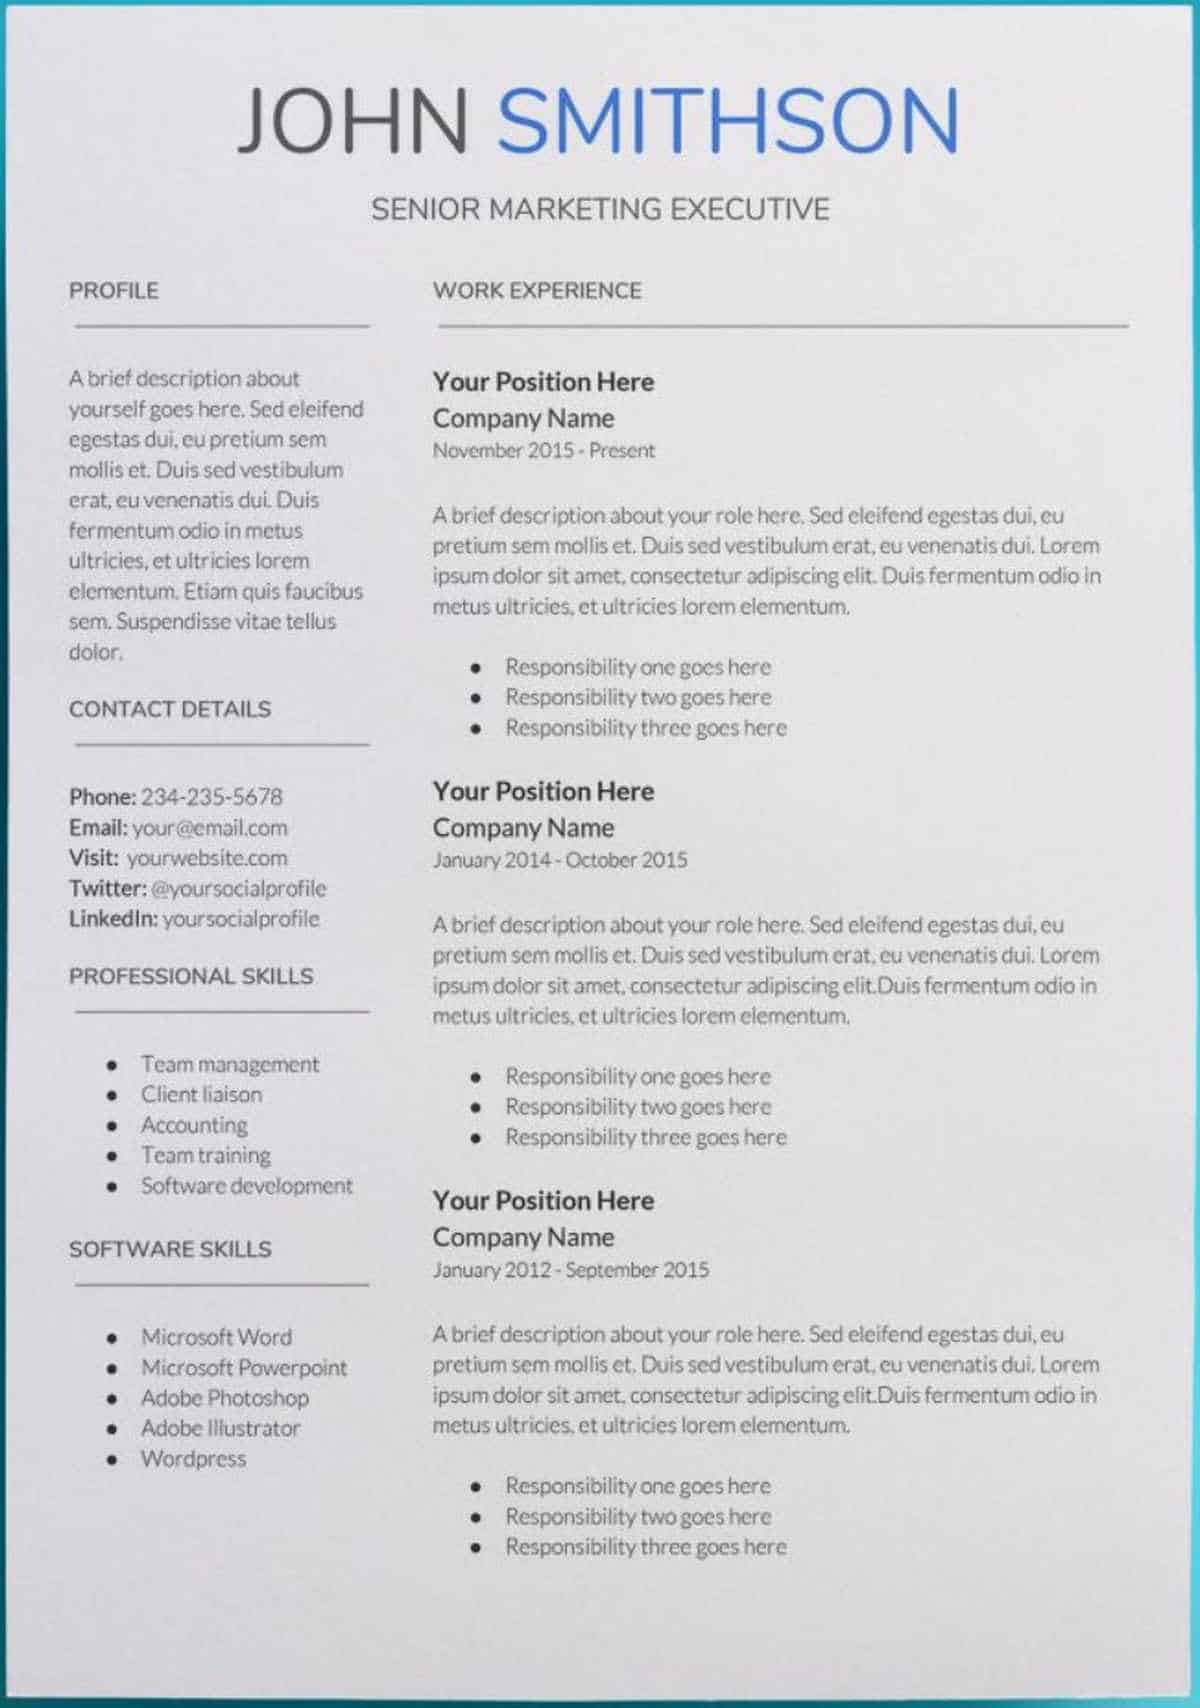 google docs resume templates downloadable pdfs saturn template free without microsoft Resume Resume Google Doc Templates